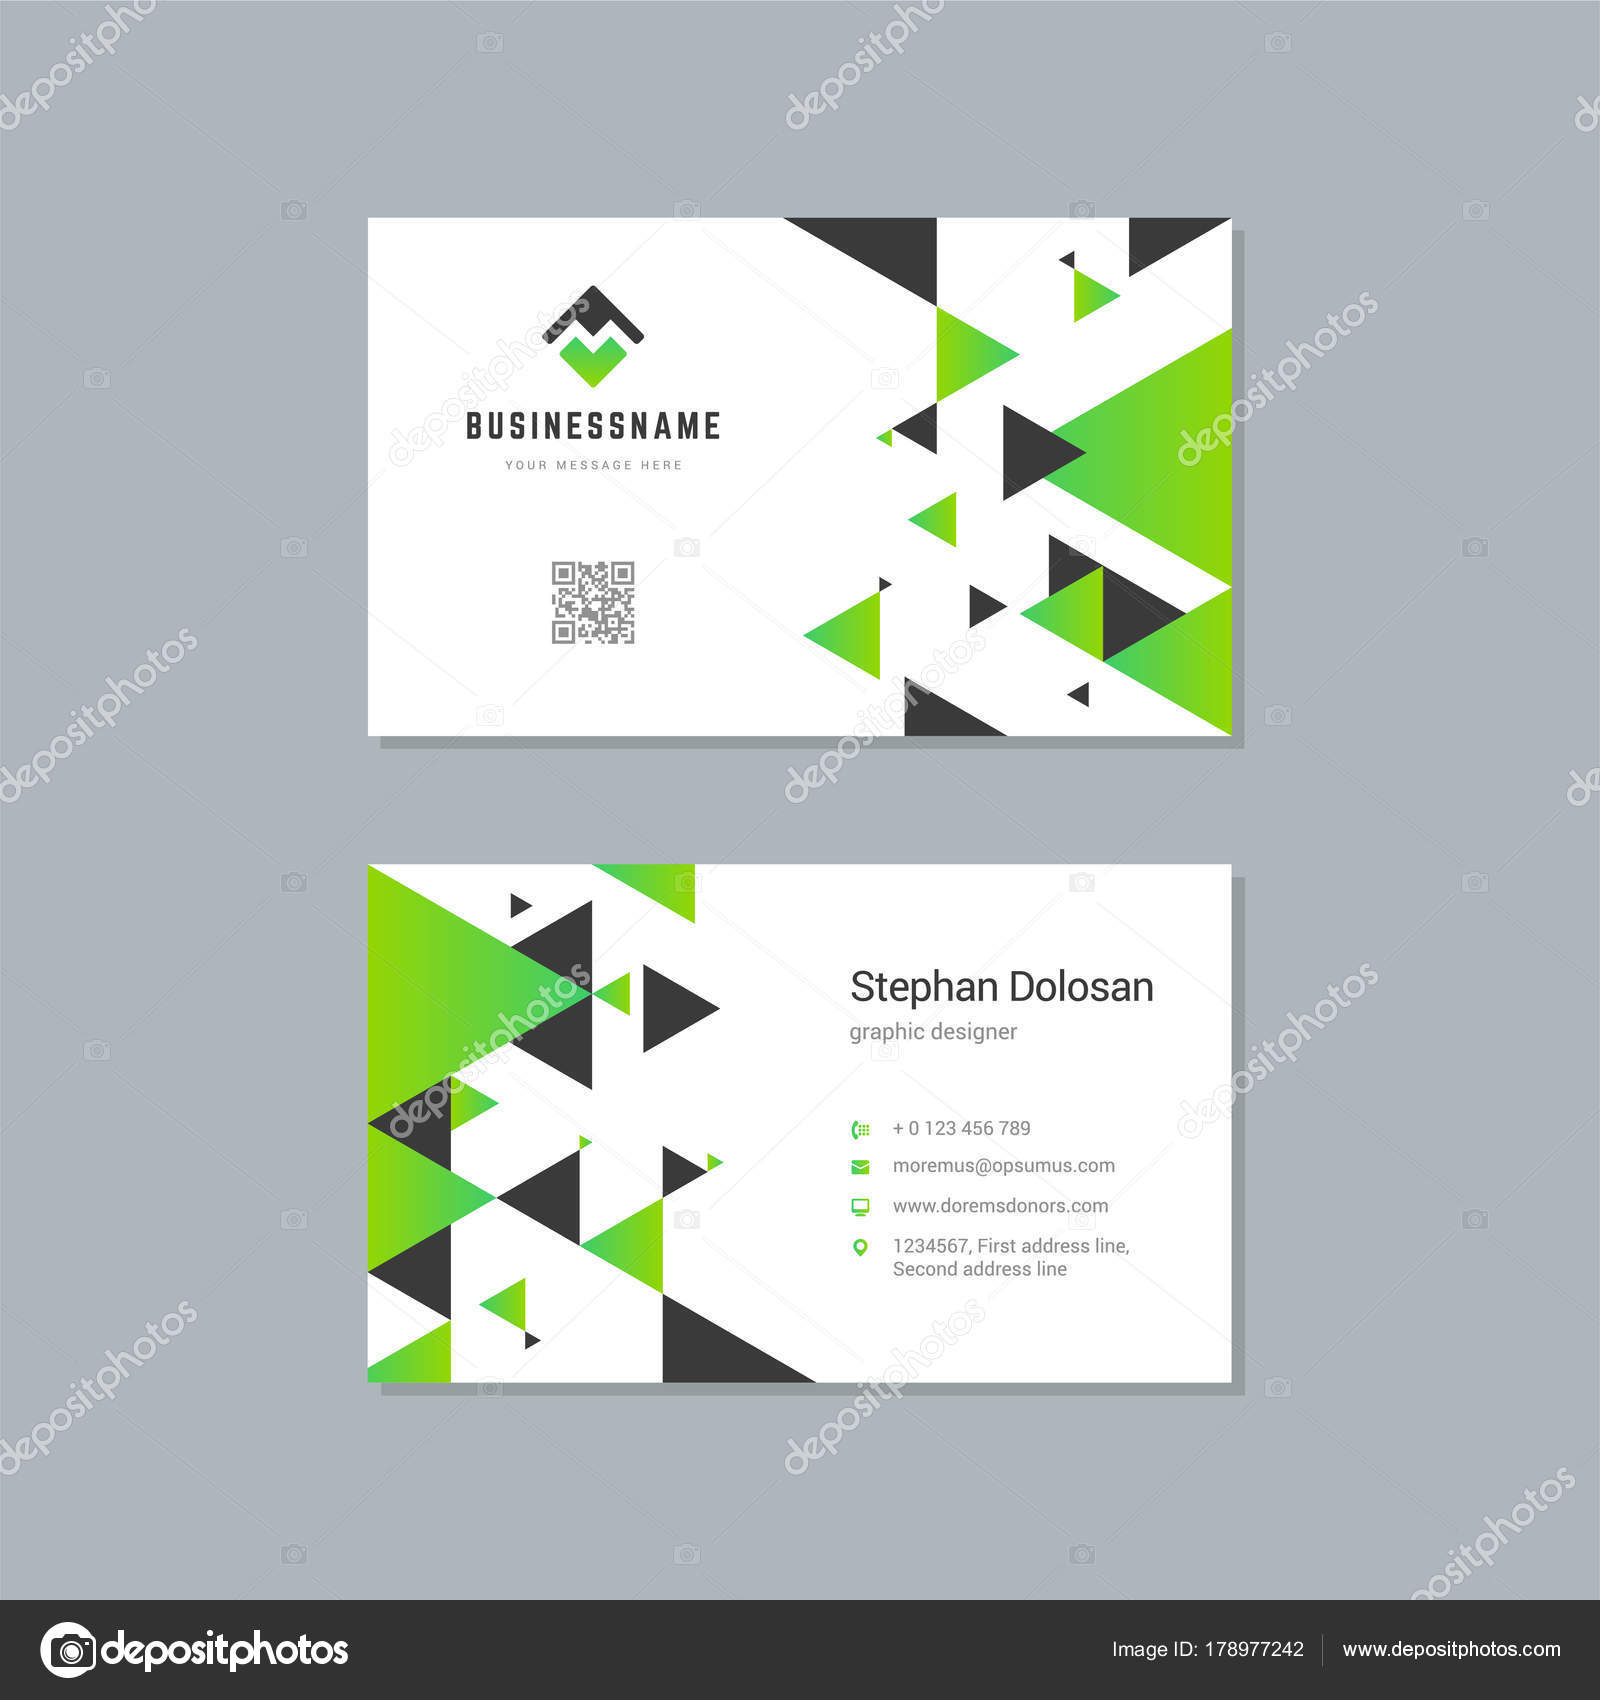 Business card design template abstract modern corporate branding business card design template abstract modern corporate branding style vector illustration stock vector reheart Image collections